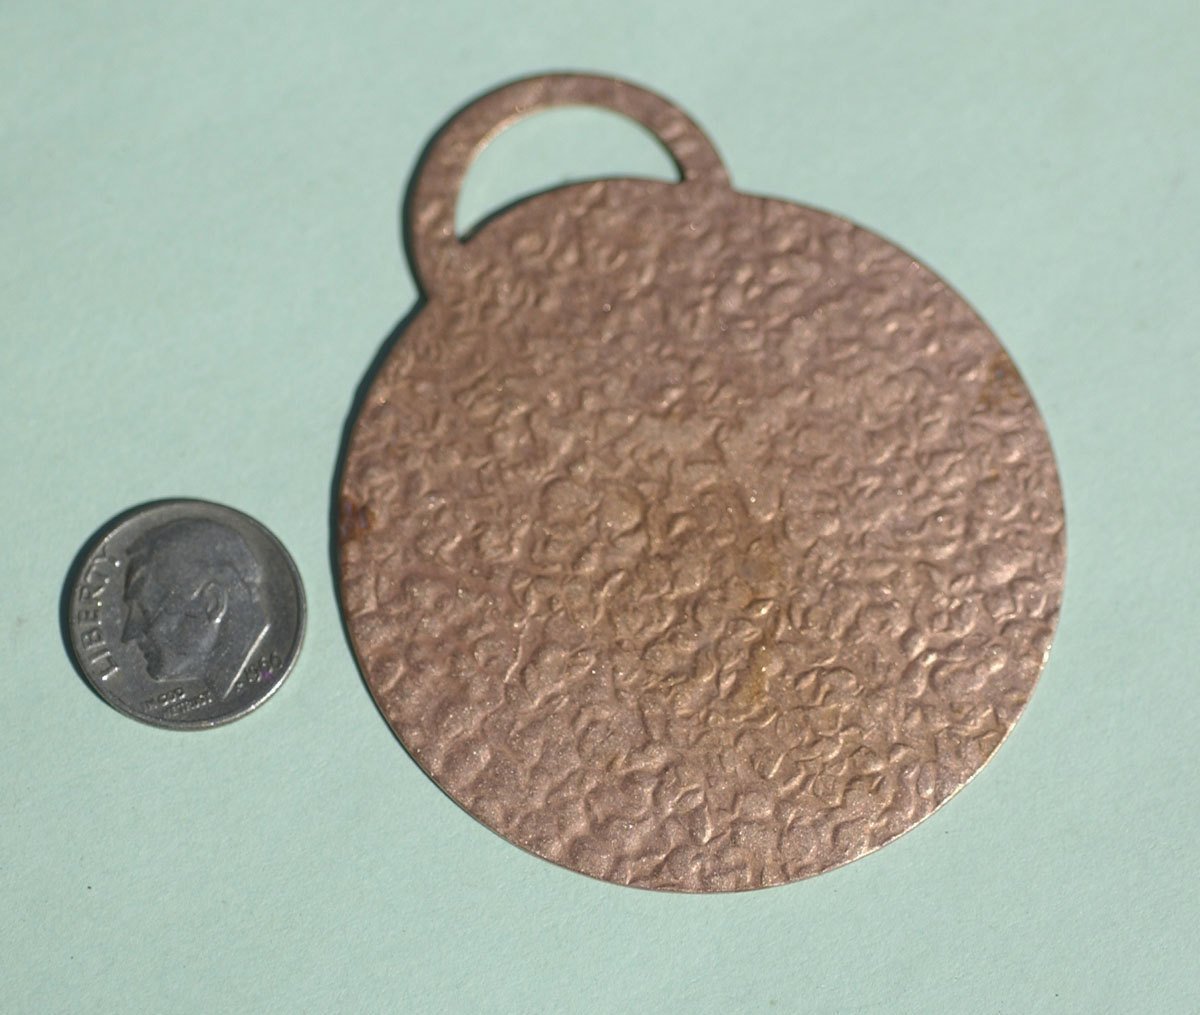 Antique Hammered Pattern Large Disc Tag 66mm Blanks Cutout for Metalworking Stamping Texturing Blank Variety of Metals - 2 pieces